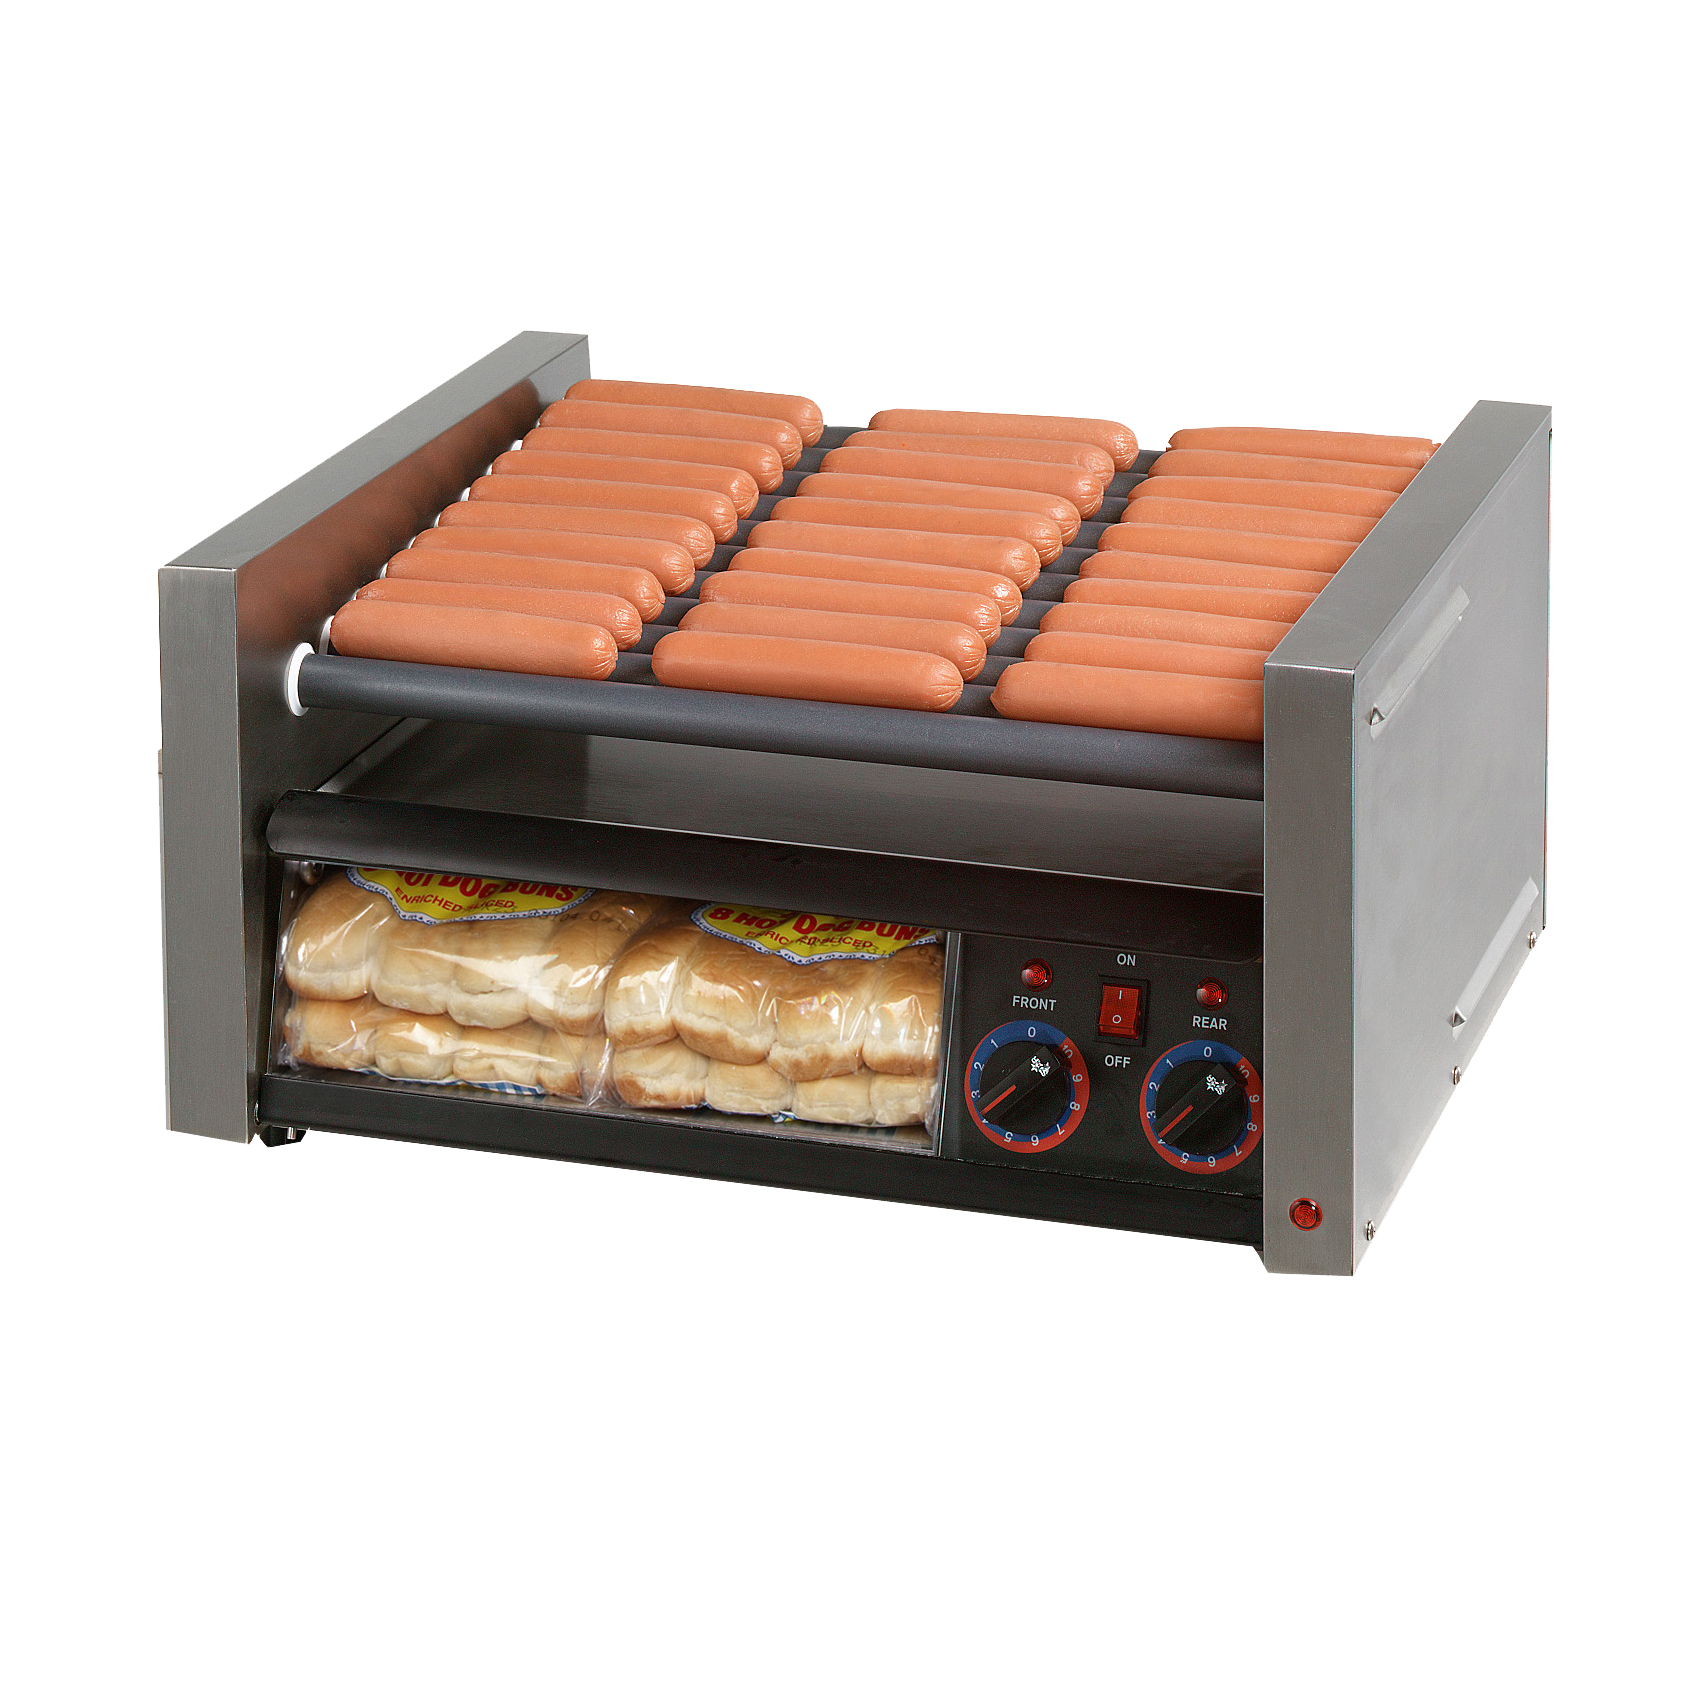 Star 30SCBBC hot dog grill